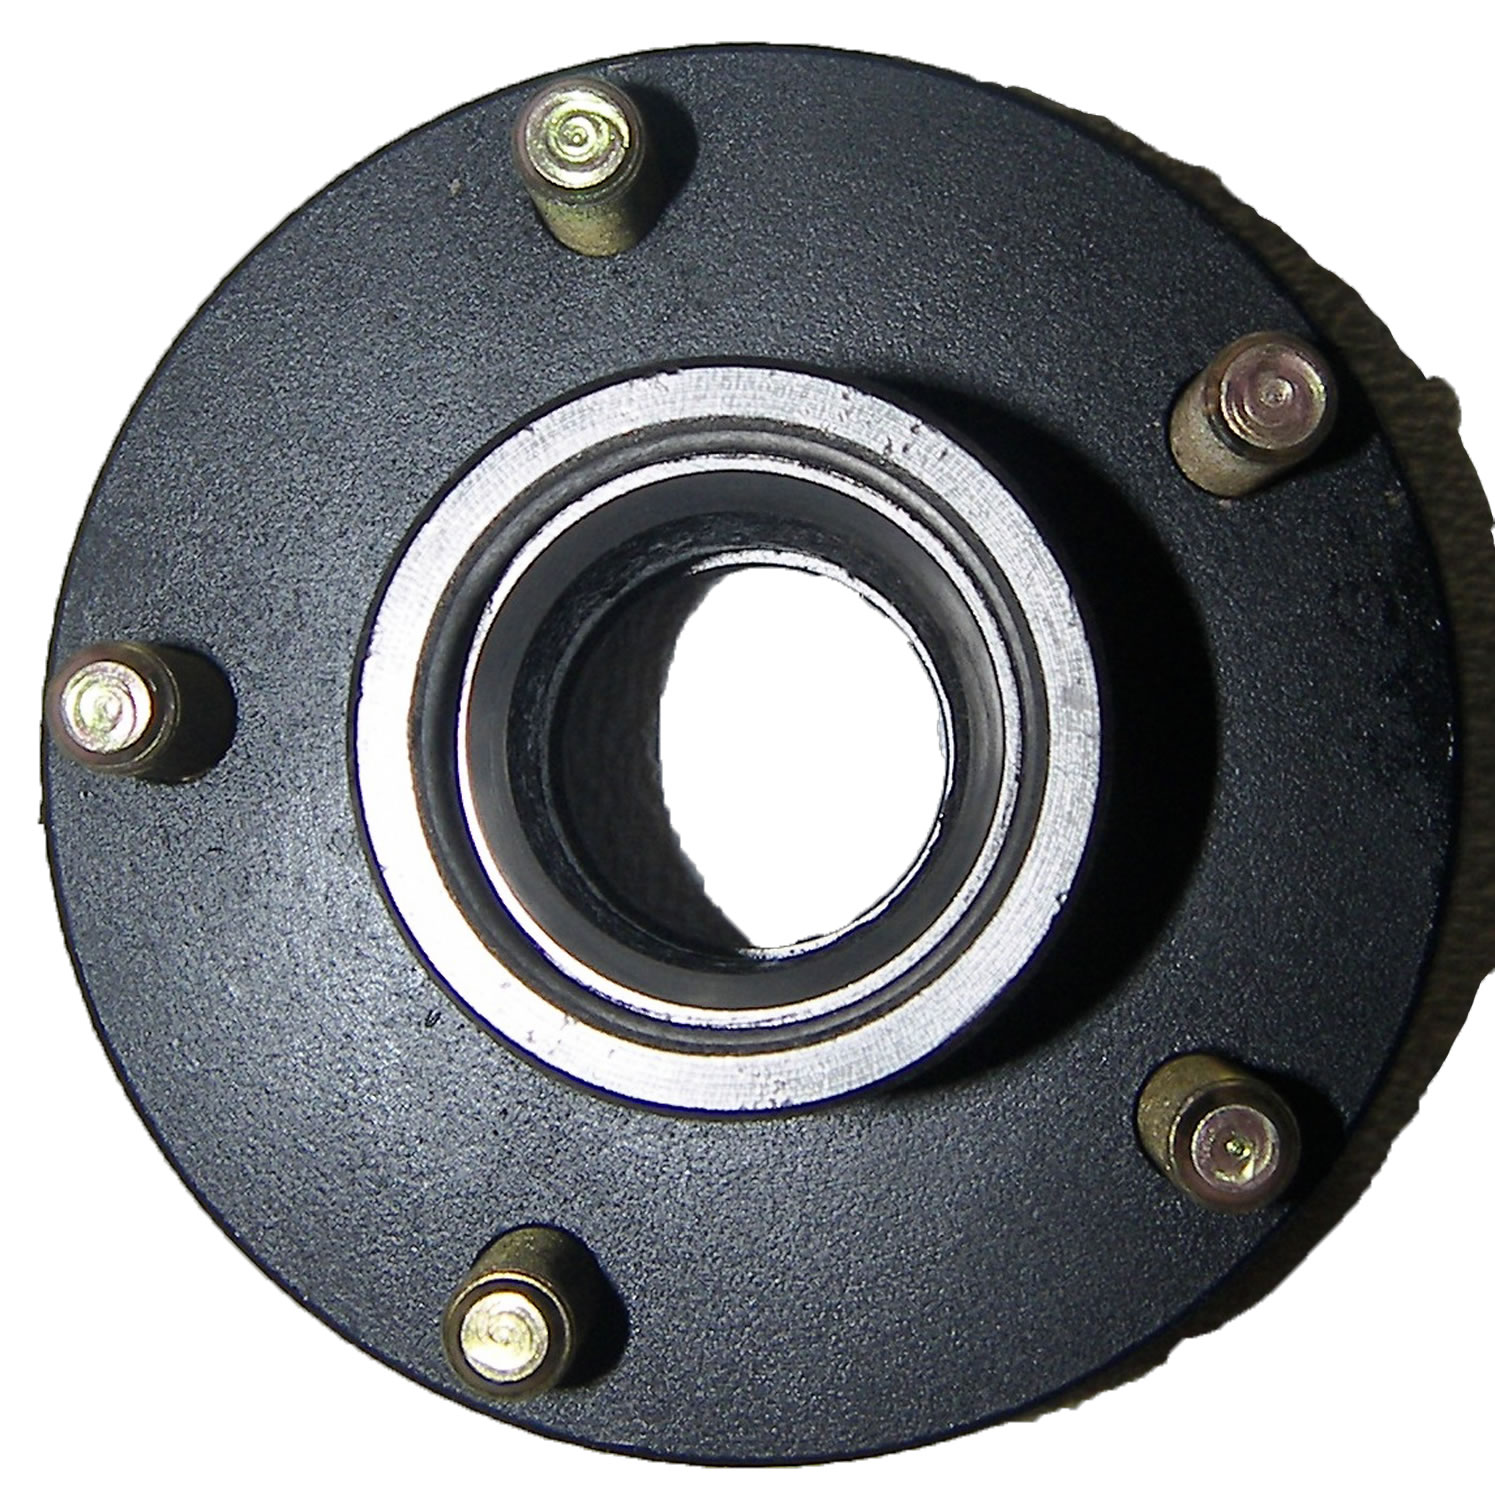 014-134332 AP Products Axle Hub 545-1/2 Inch